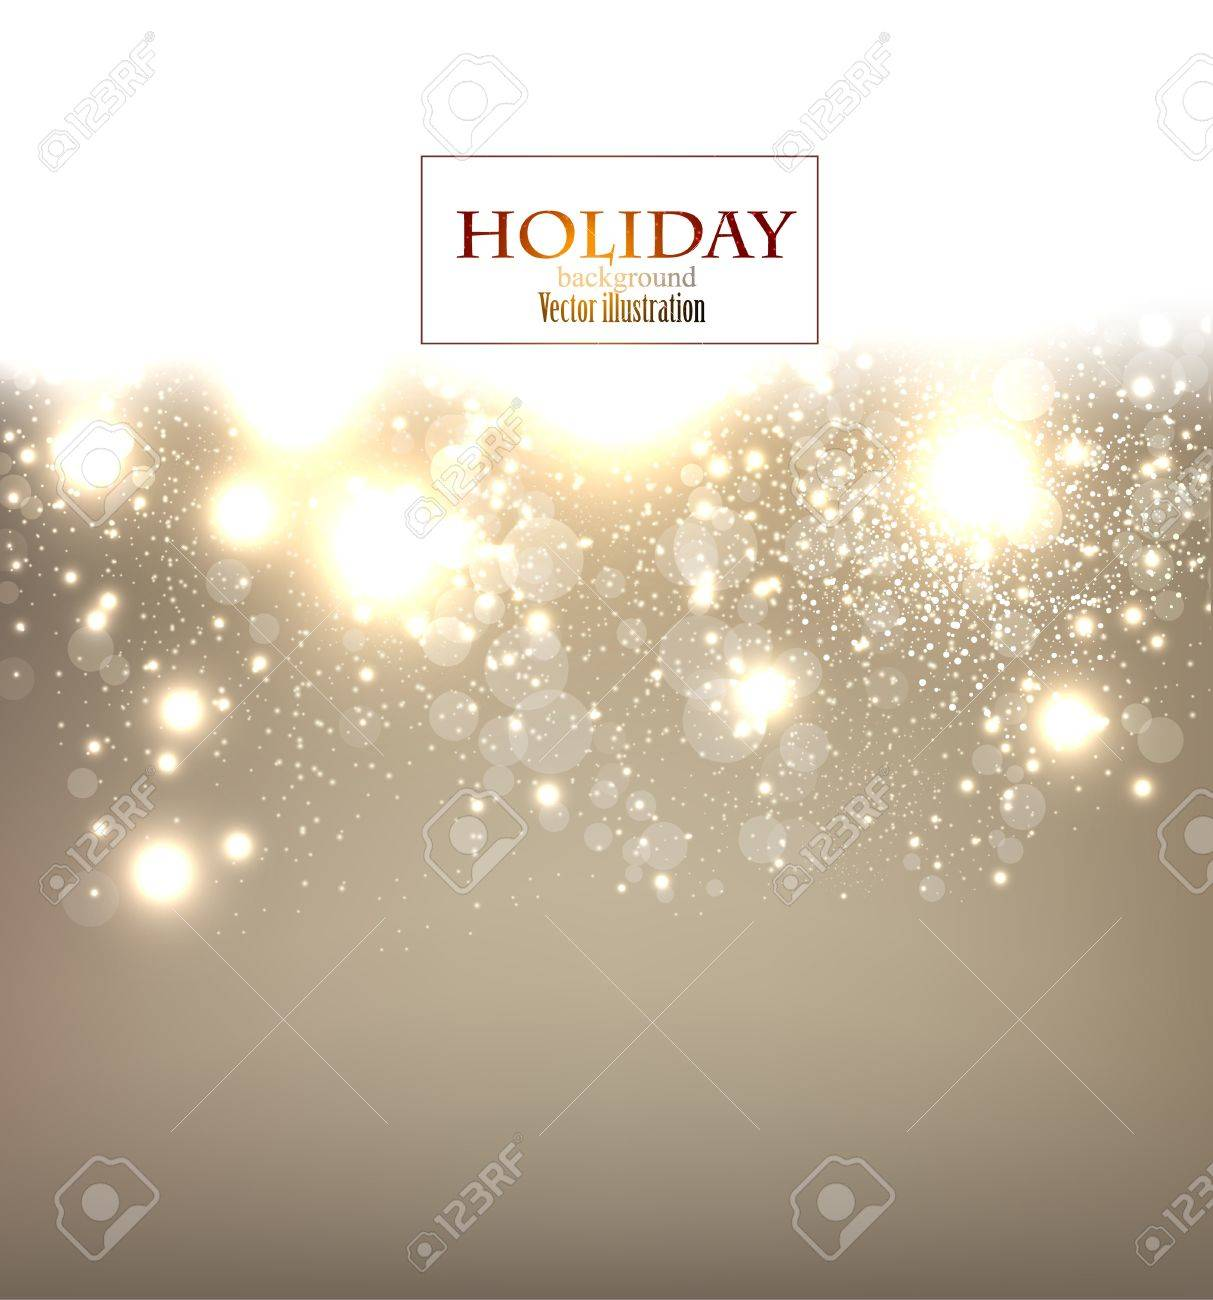 Elegant Christmas background with snowflakes and place for text. Vector Illustration. - 20822744